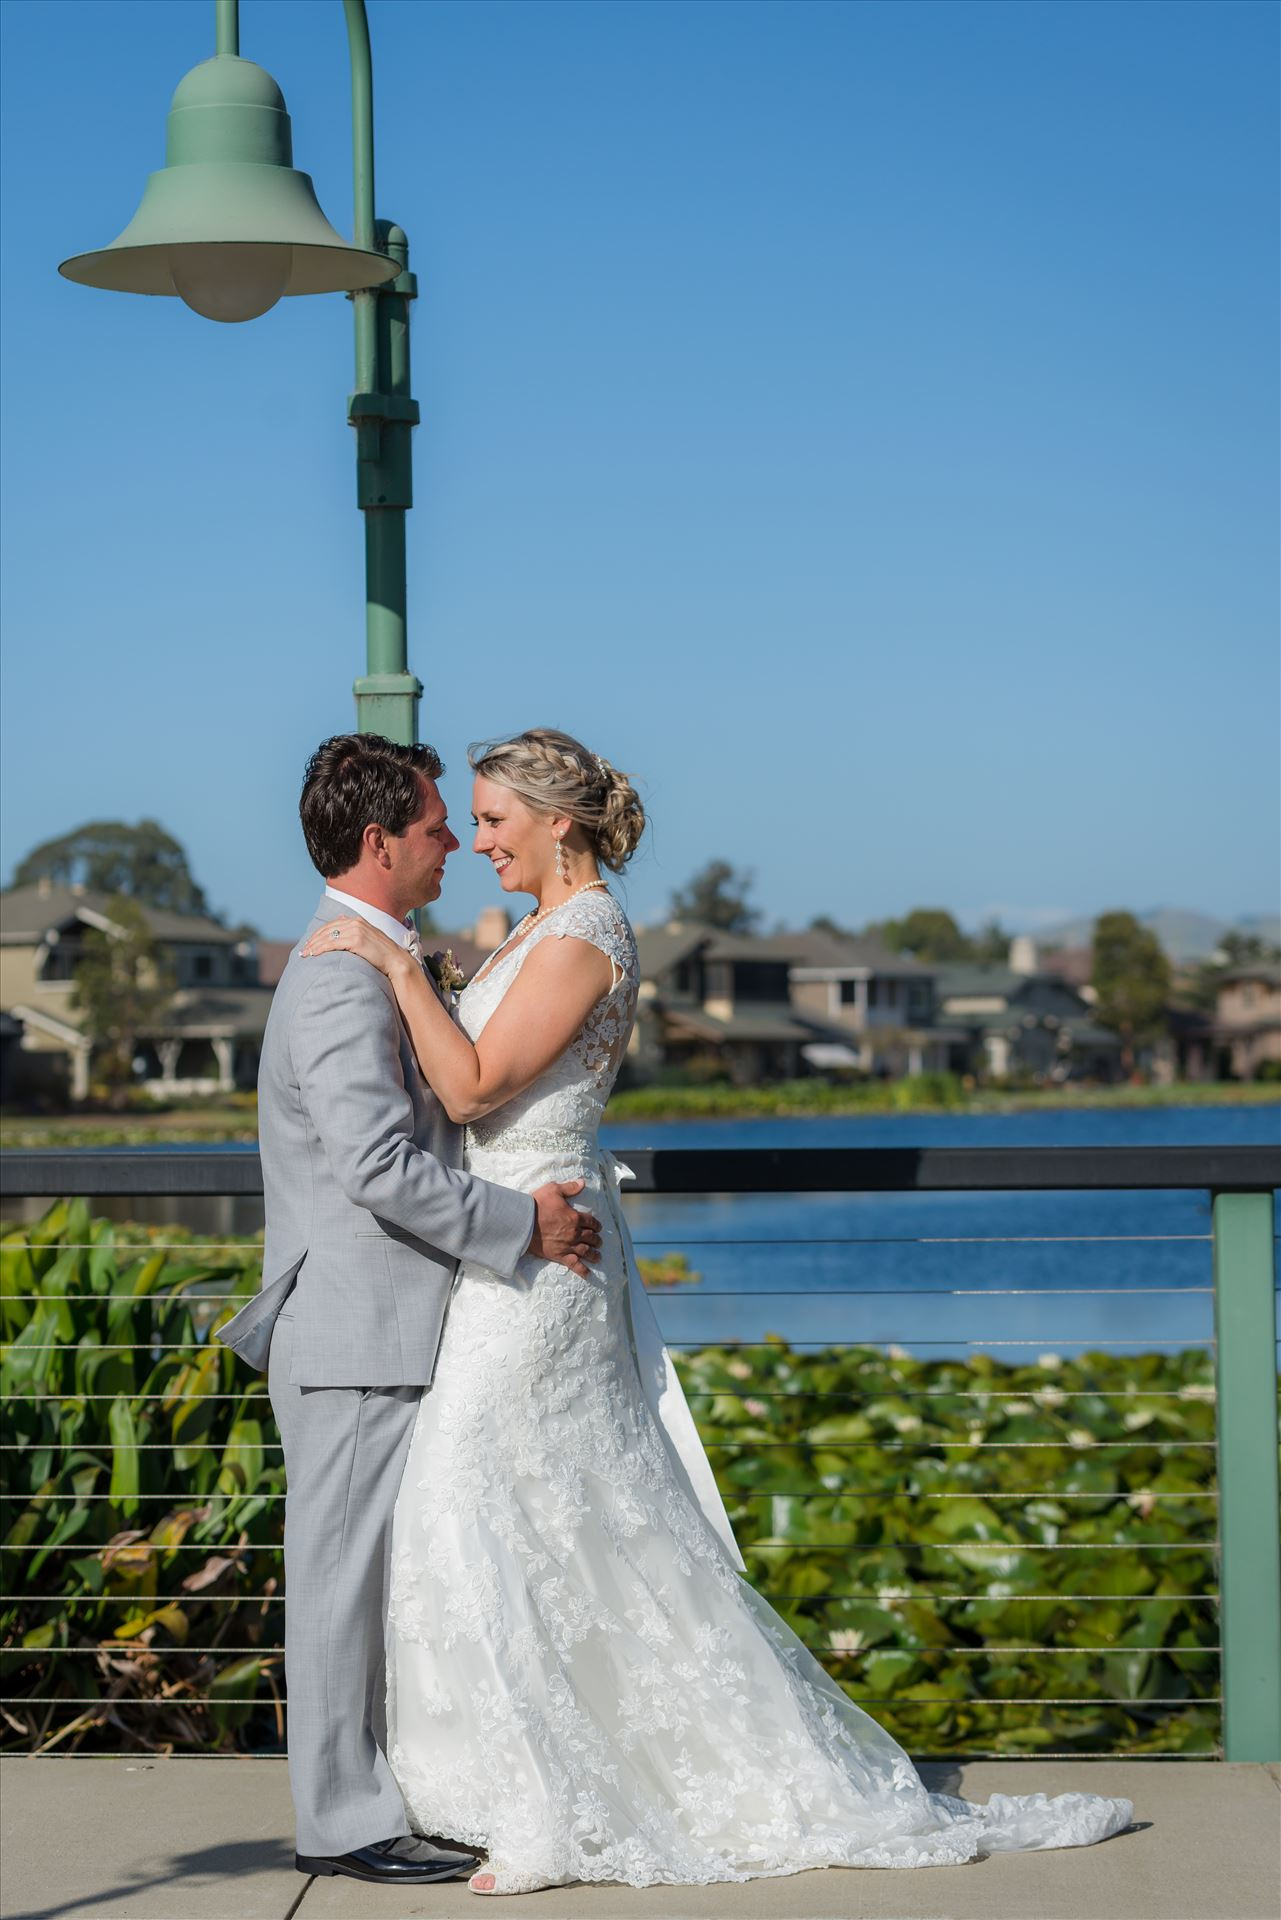 SP Gallery-9105.JPG - Cypress Ridge Pavilion Wedding Photography by Mirror's Edge Photography in Arroyo Grande California.  Bride and room by the lake and lamp post by Sarah Williams